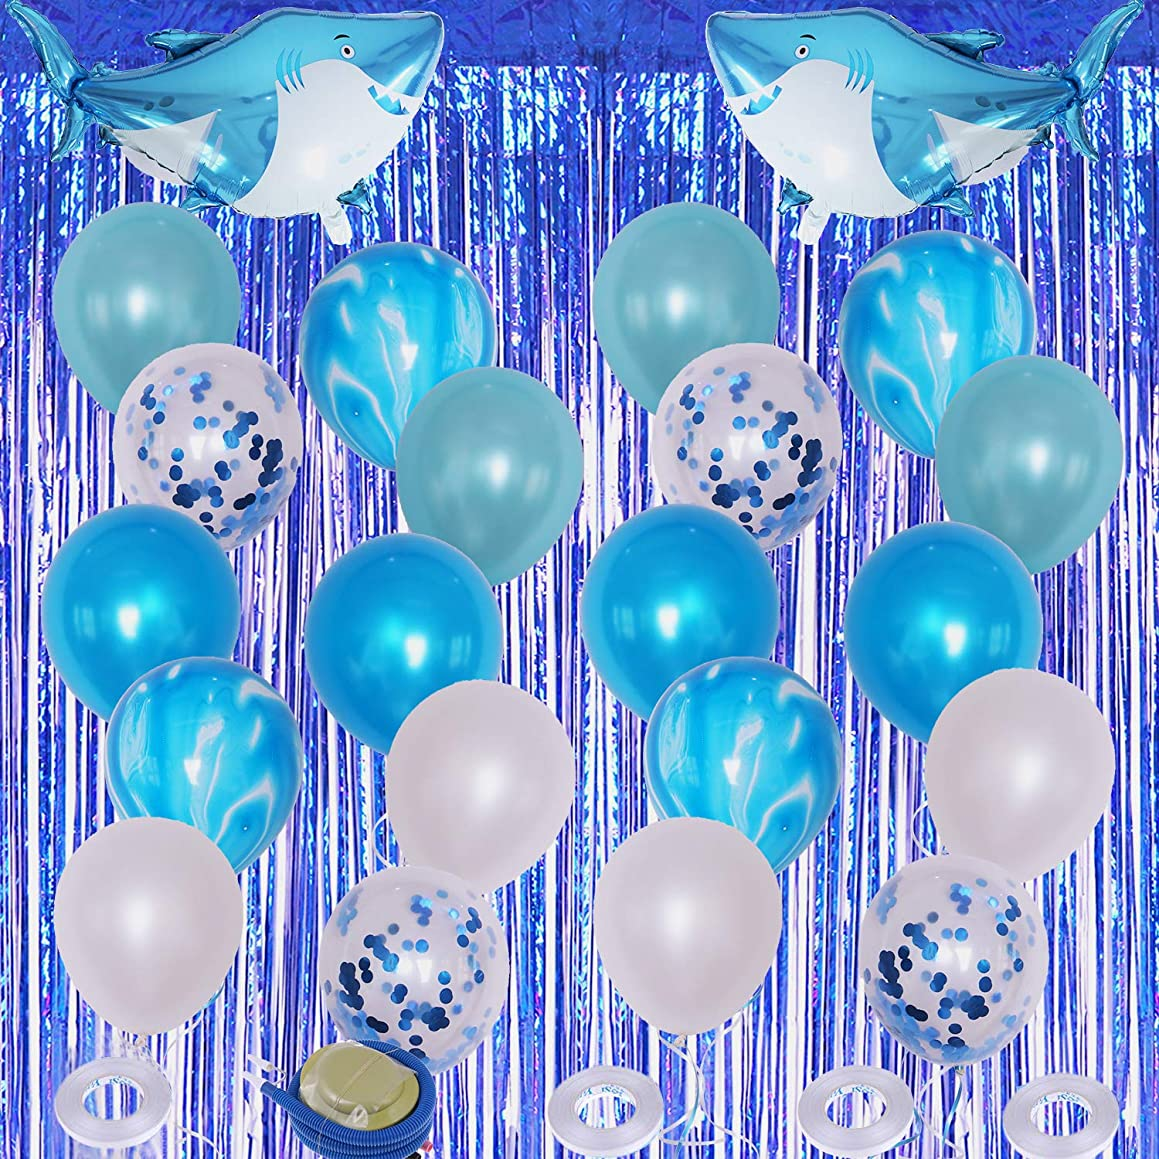 KisSealed 28 Pieces Shark Blue Party Decorations Latex Balloons Foil Curtains Shark Balloons Ocean Theme Party Decors Balloon Ribbons for Kids Gifts Wedding Festival Decor